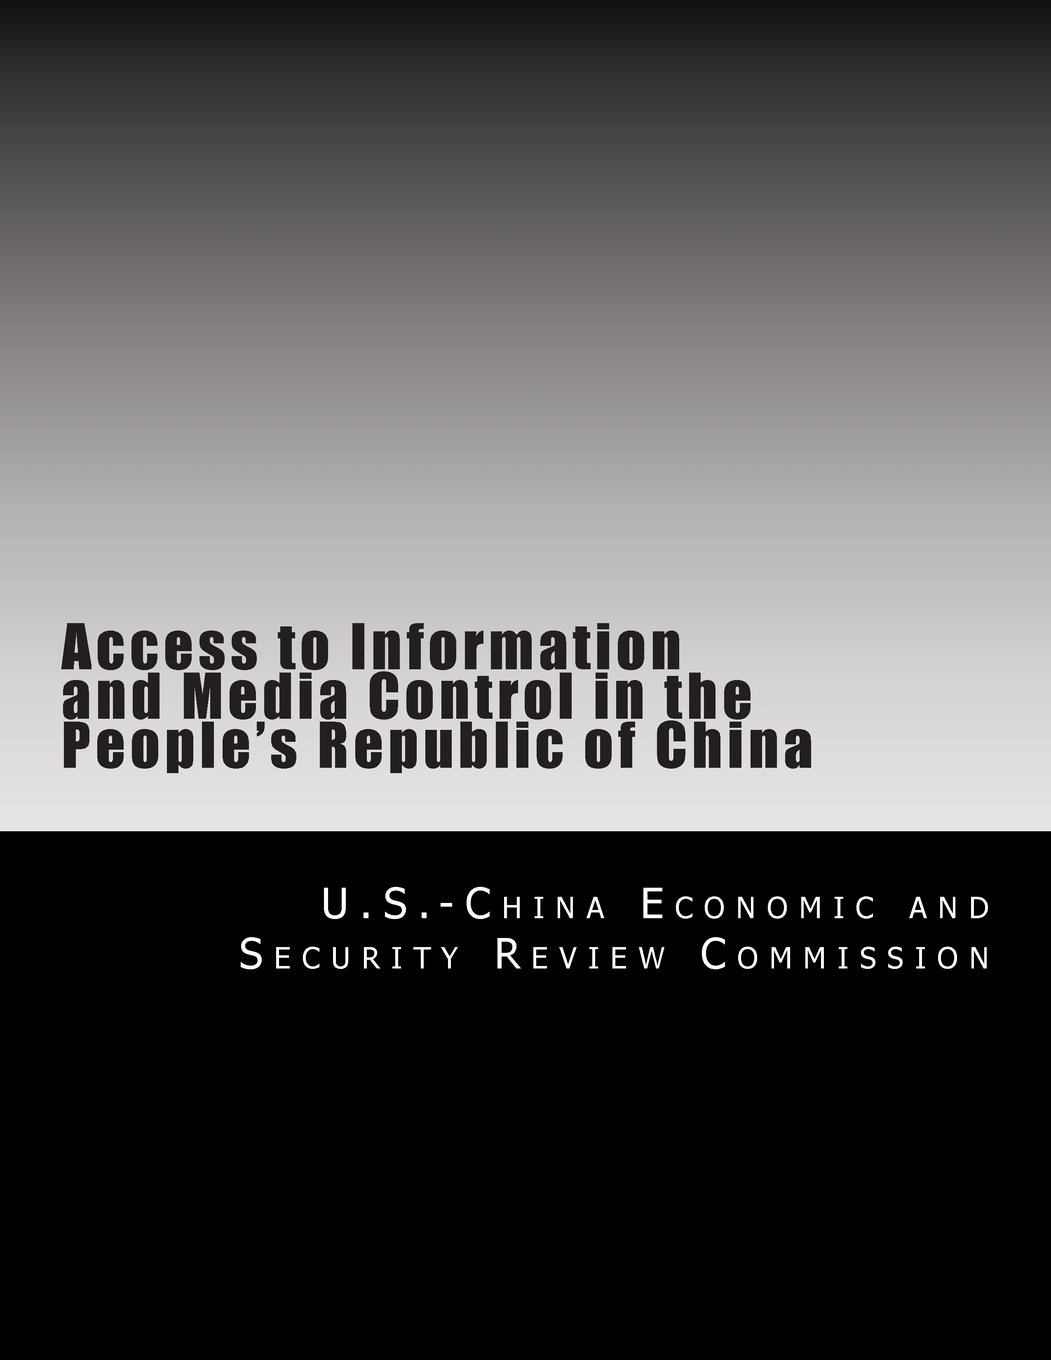 Access to Information and Media Control in the People's Republic of China pdf